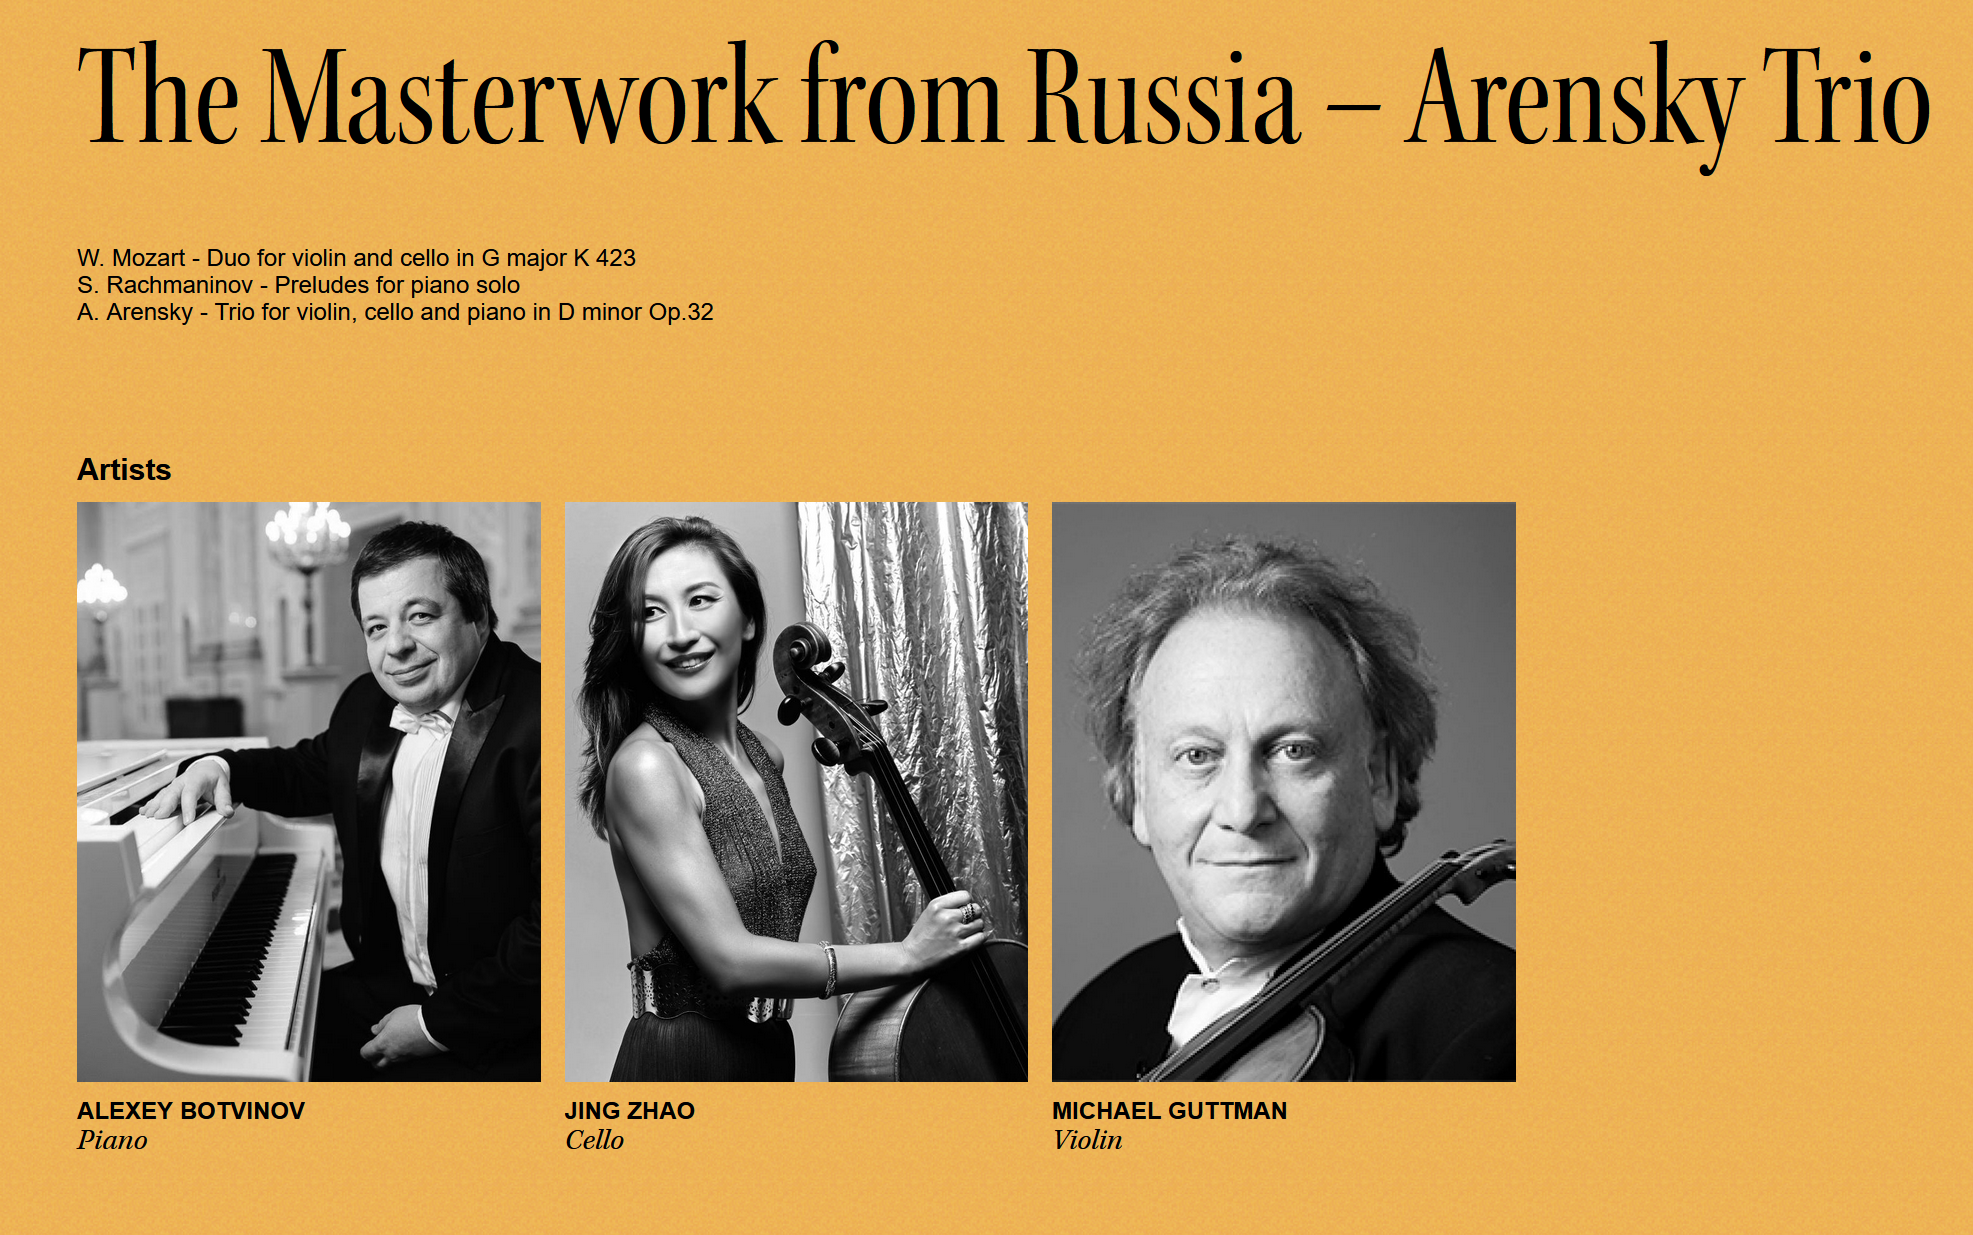 The Masterwork from Russia – Arensky Trio